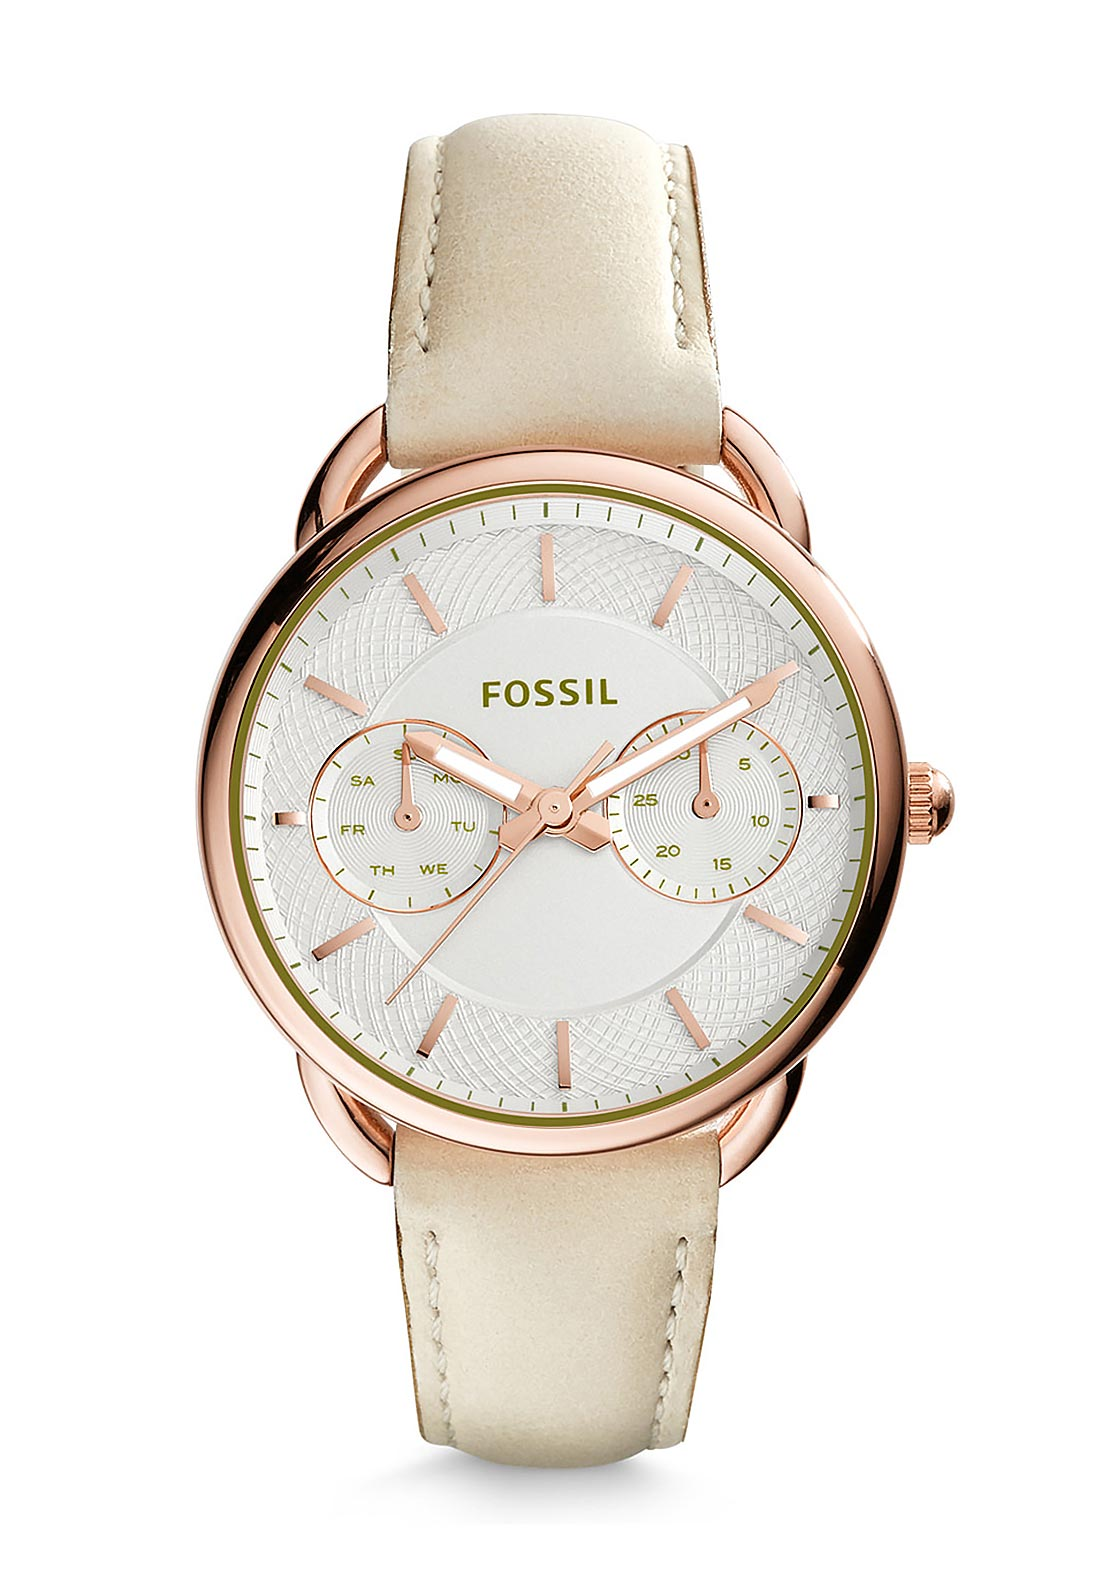 Fossil Womens Tailor Multi-Function Watch, Light Brown & Rose Gold